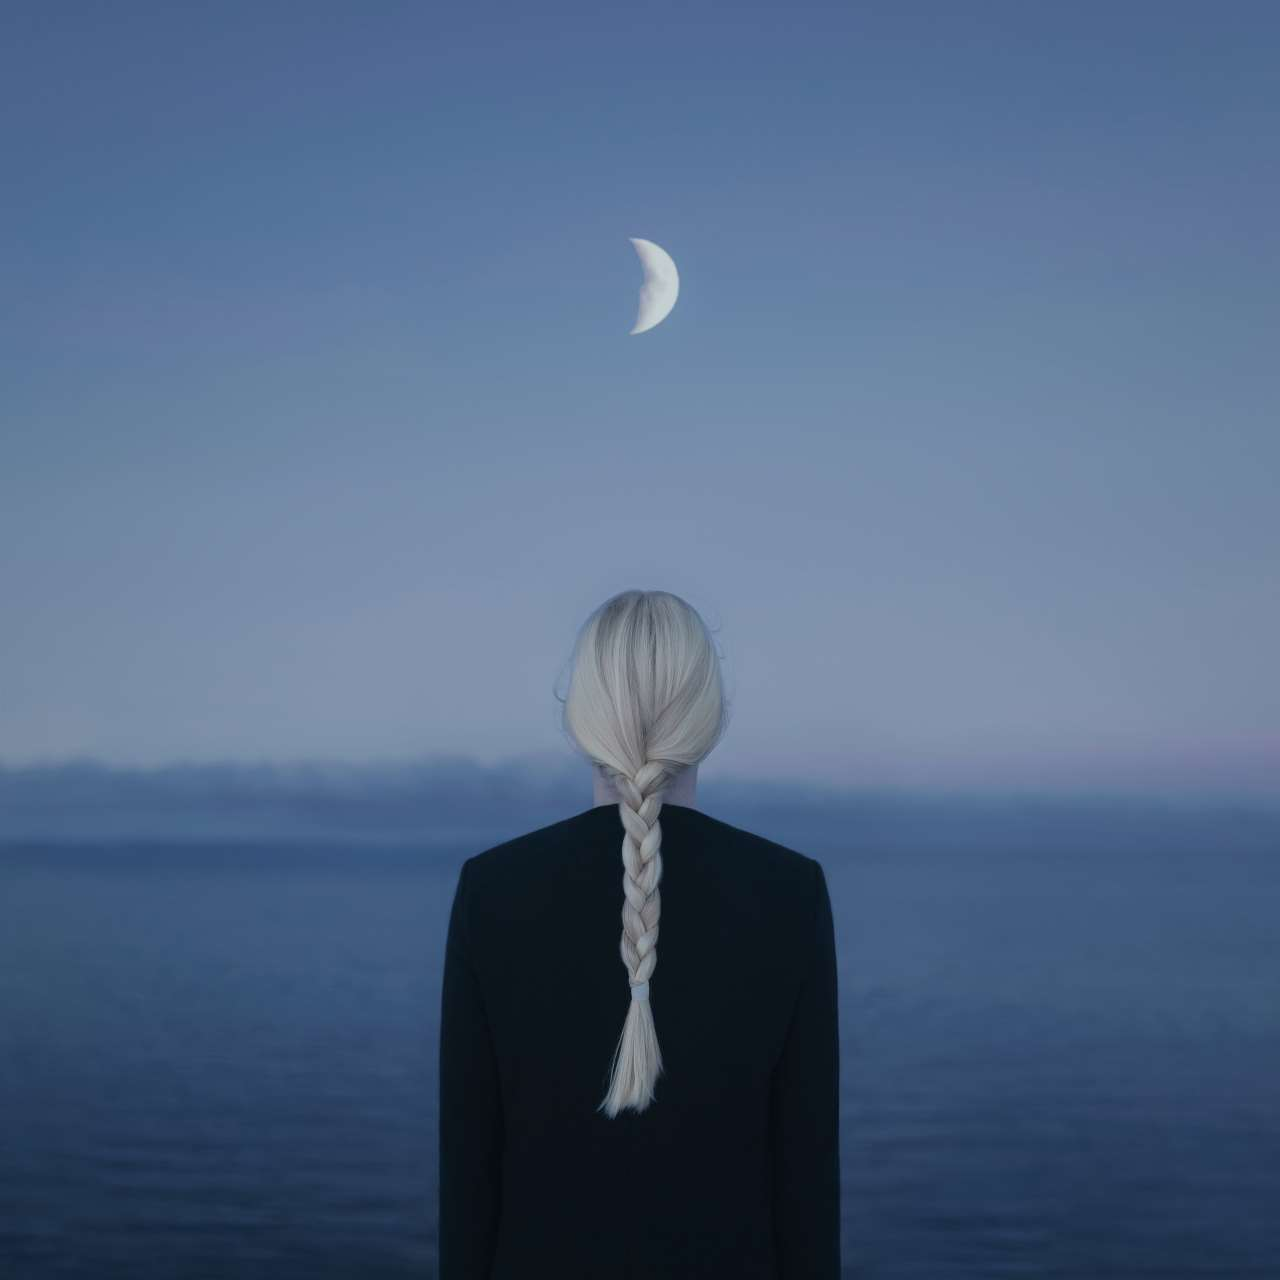 Gabriel Isak, Illumination in the Dark, from 'The Blue Journey' series. © Gabriel Isak.